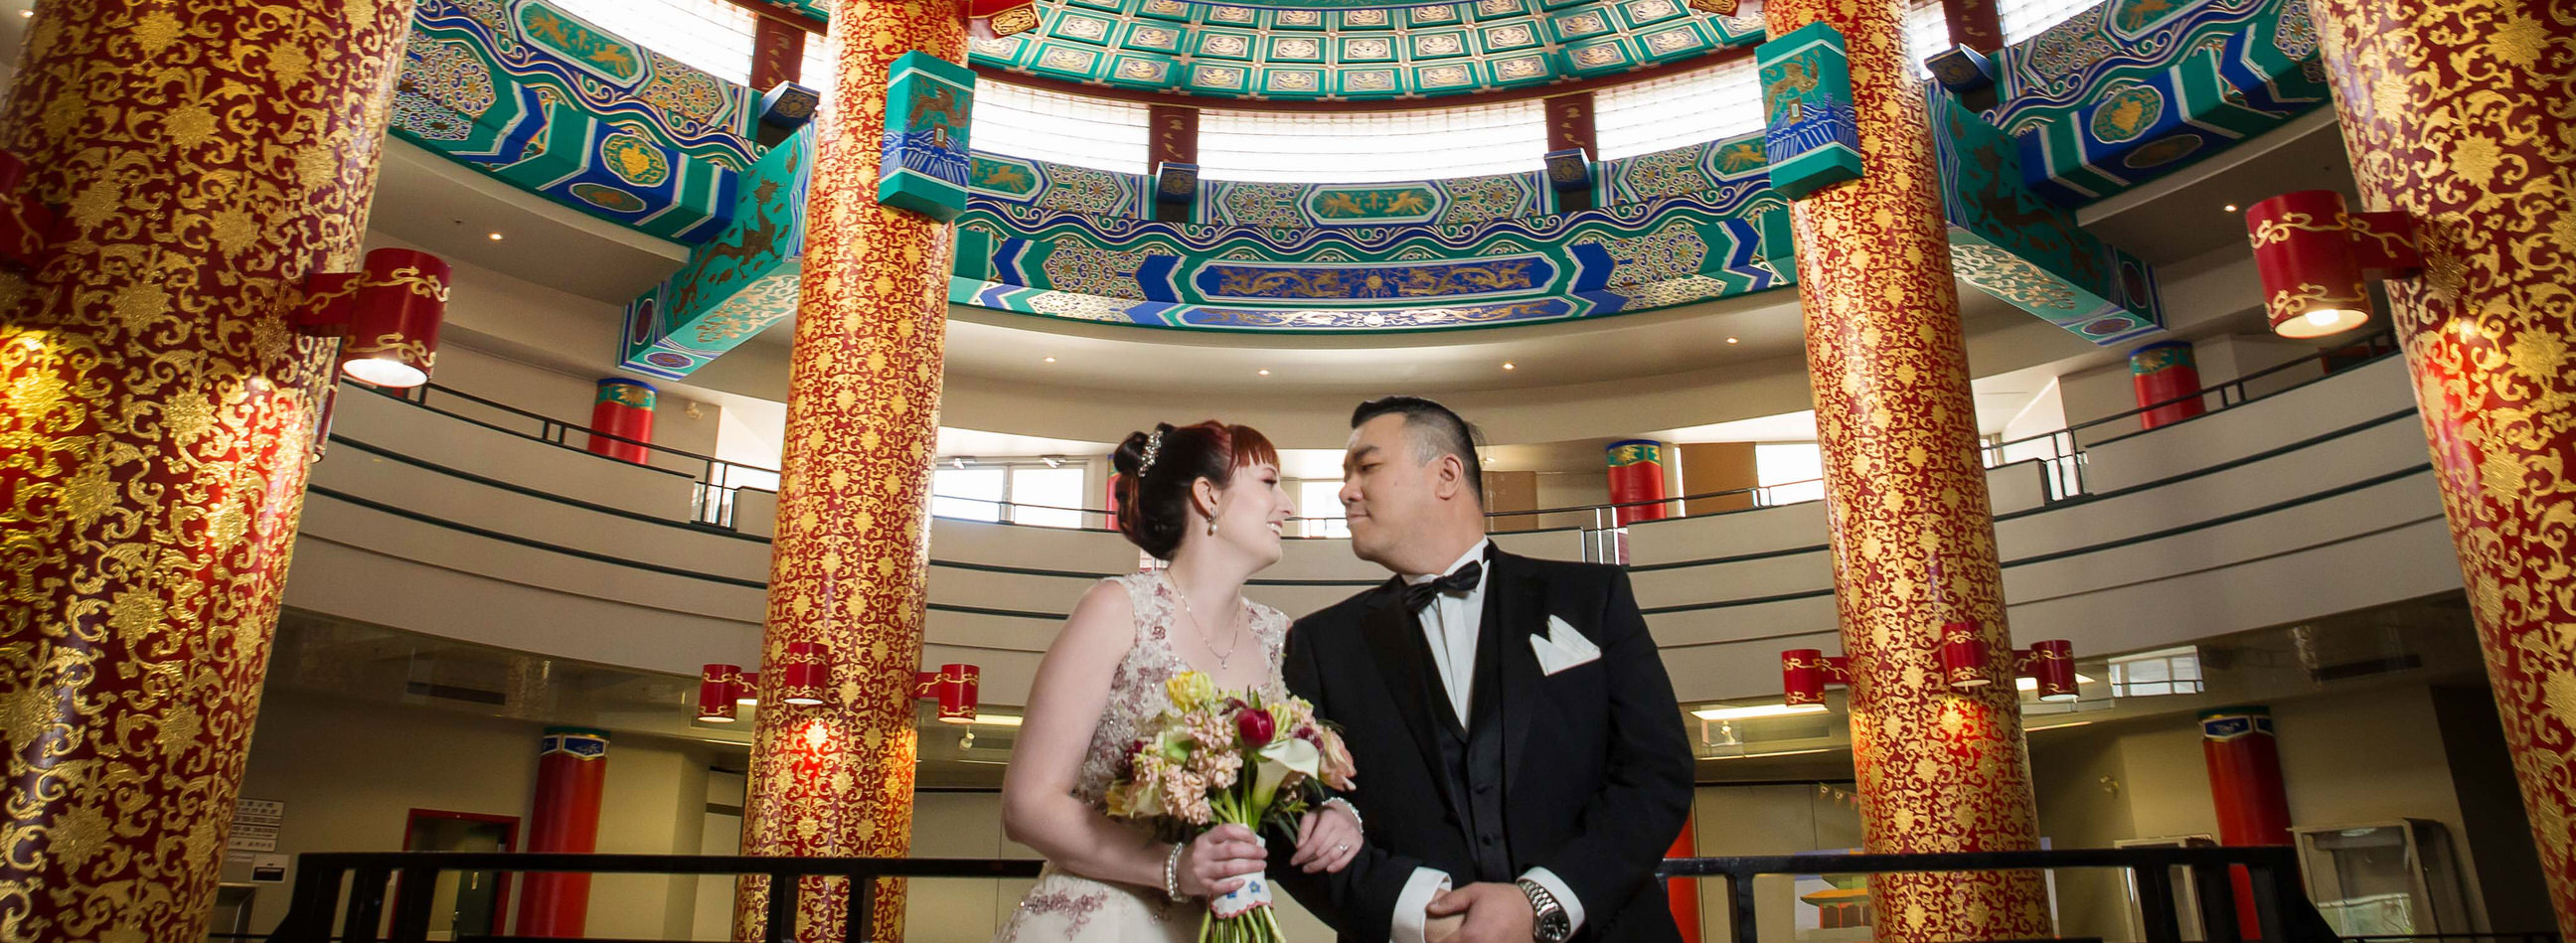 Brittany testimonial, Calgary wedding at Chinese Cultural Centre